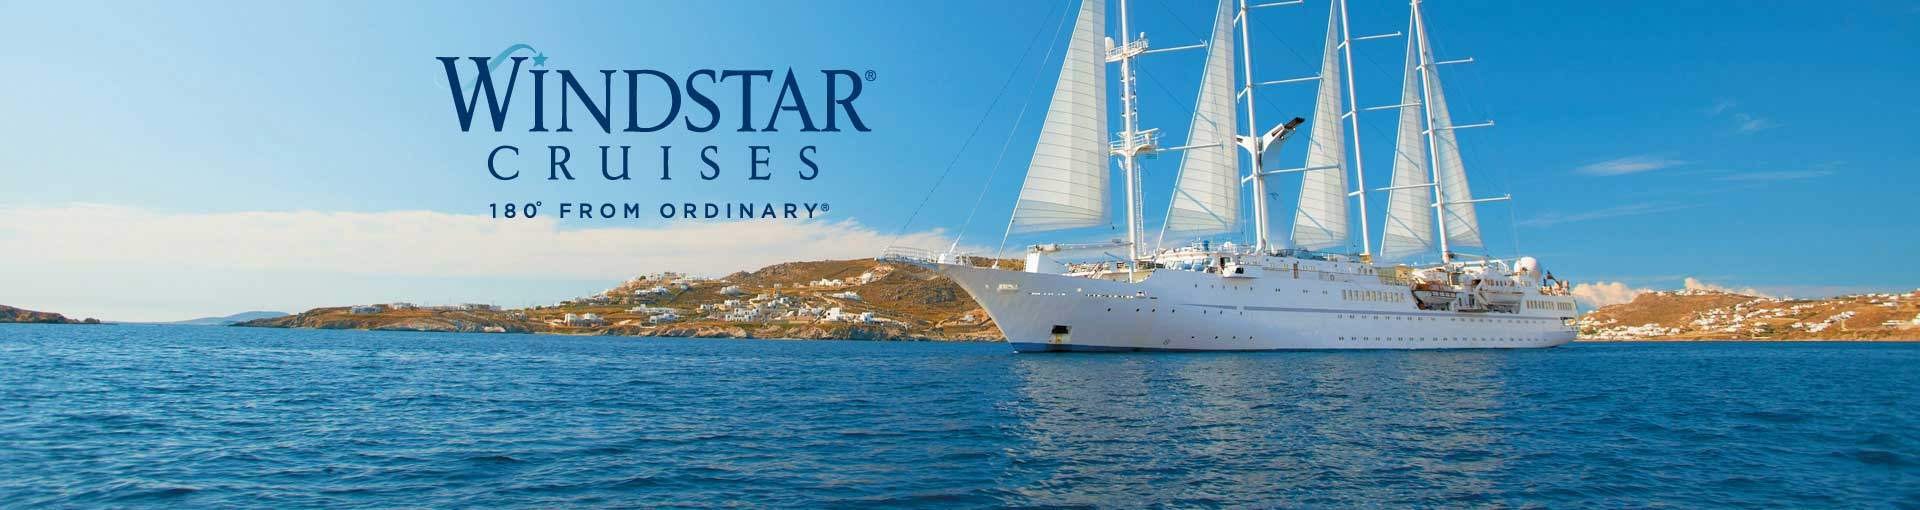 Windstar Cruises 2018 And 2019 Cruise Deals Destinations